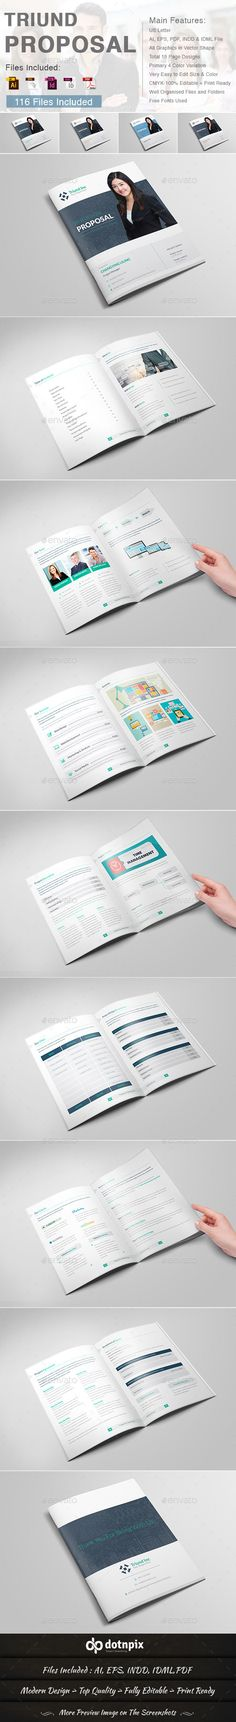 Triund Proposal — Vector EPS #app #proposal code • Available here → https://graphicriver.net/item/triund-proposal/9713121?ref=pxcr